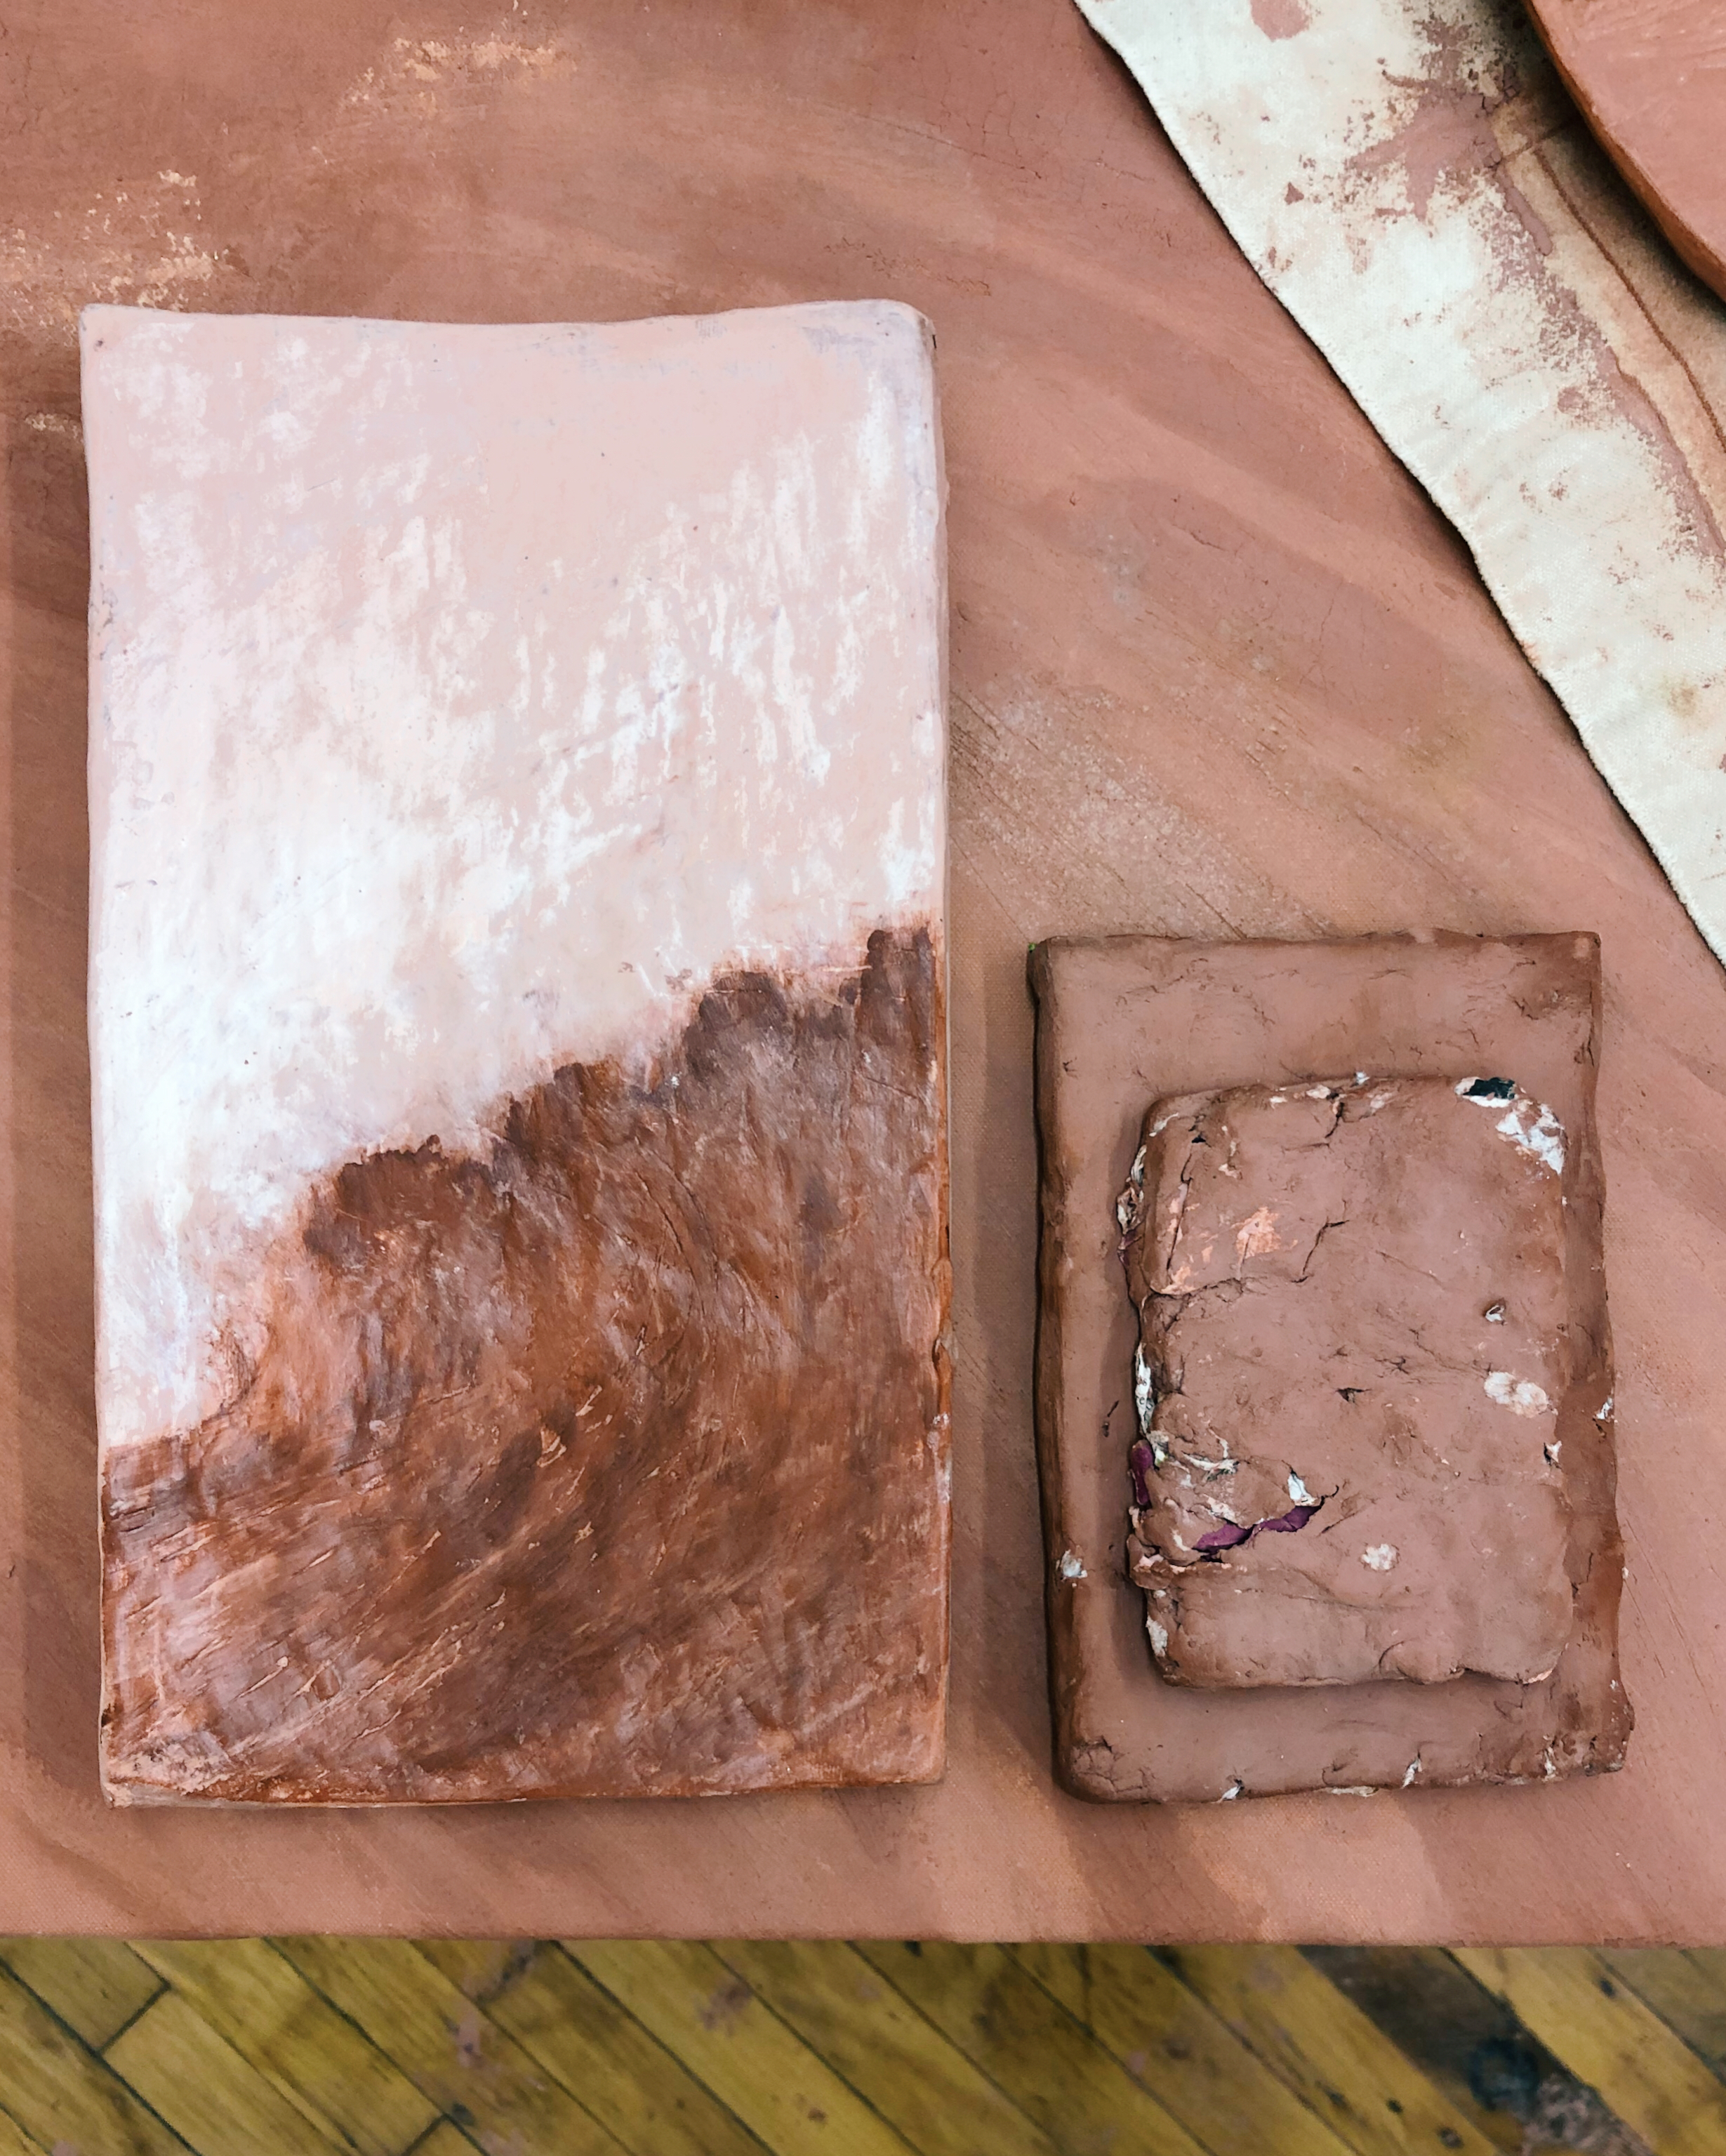 Clay tablets, painted, sculpted around torn book pages